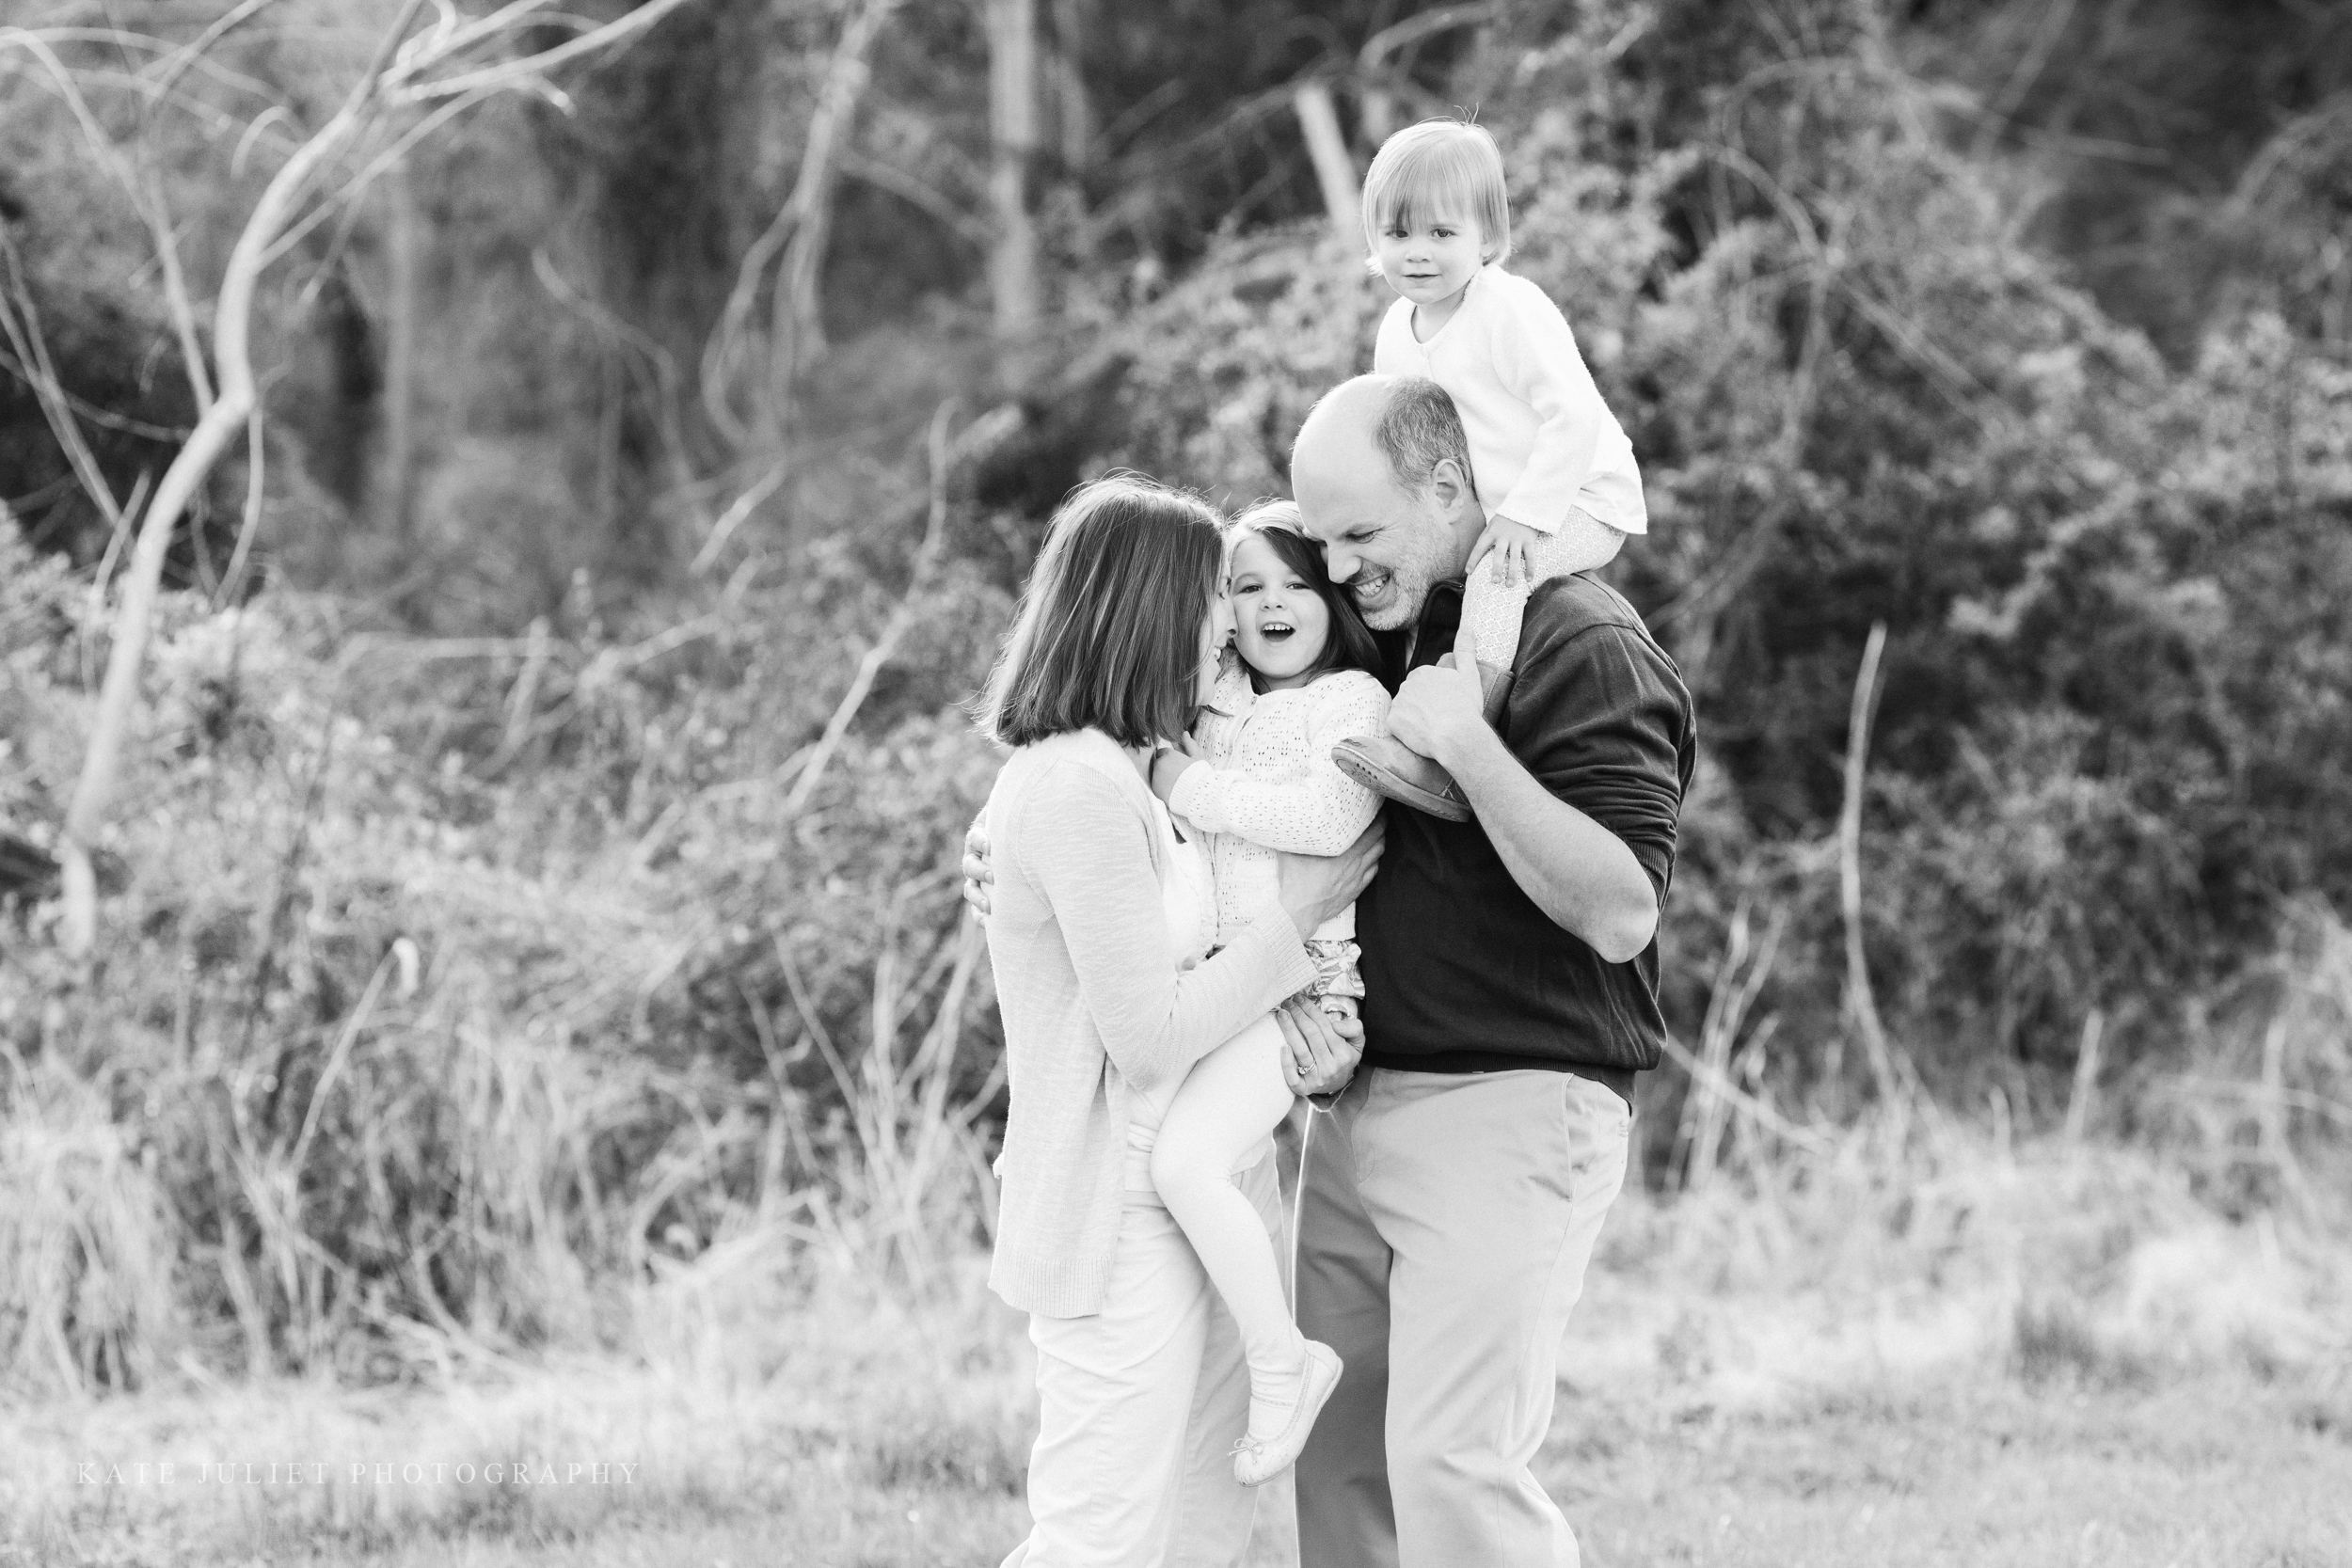 kate juliet photography - family - northern va